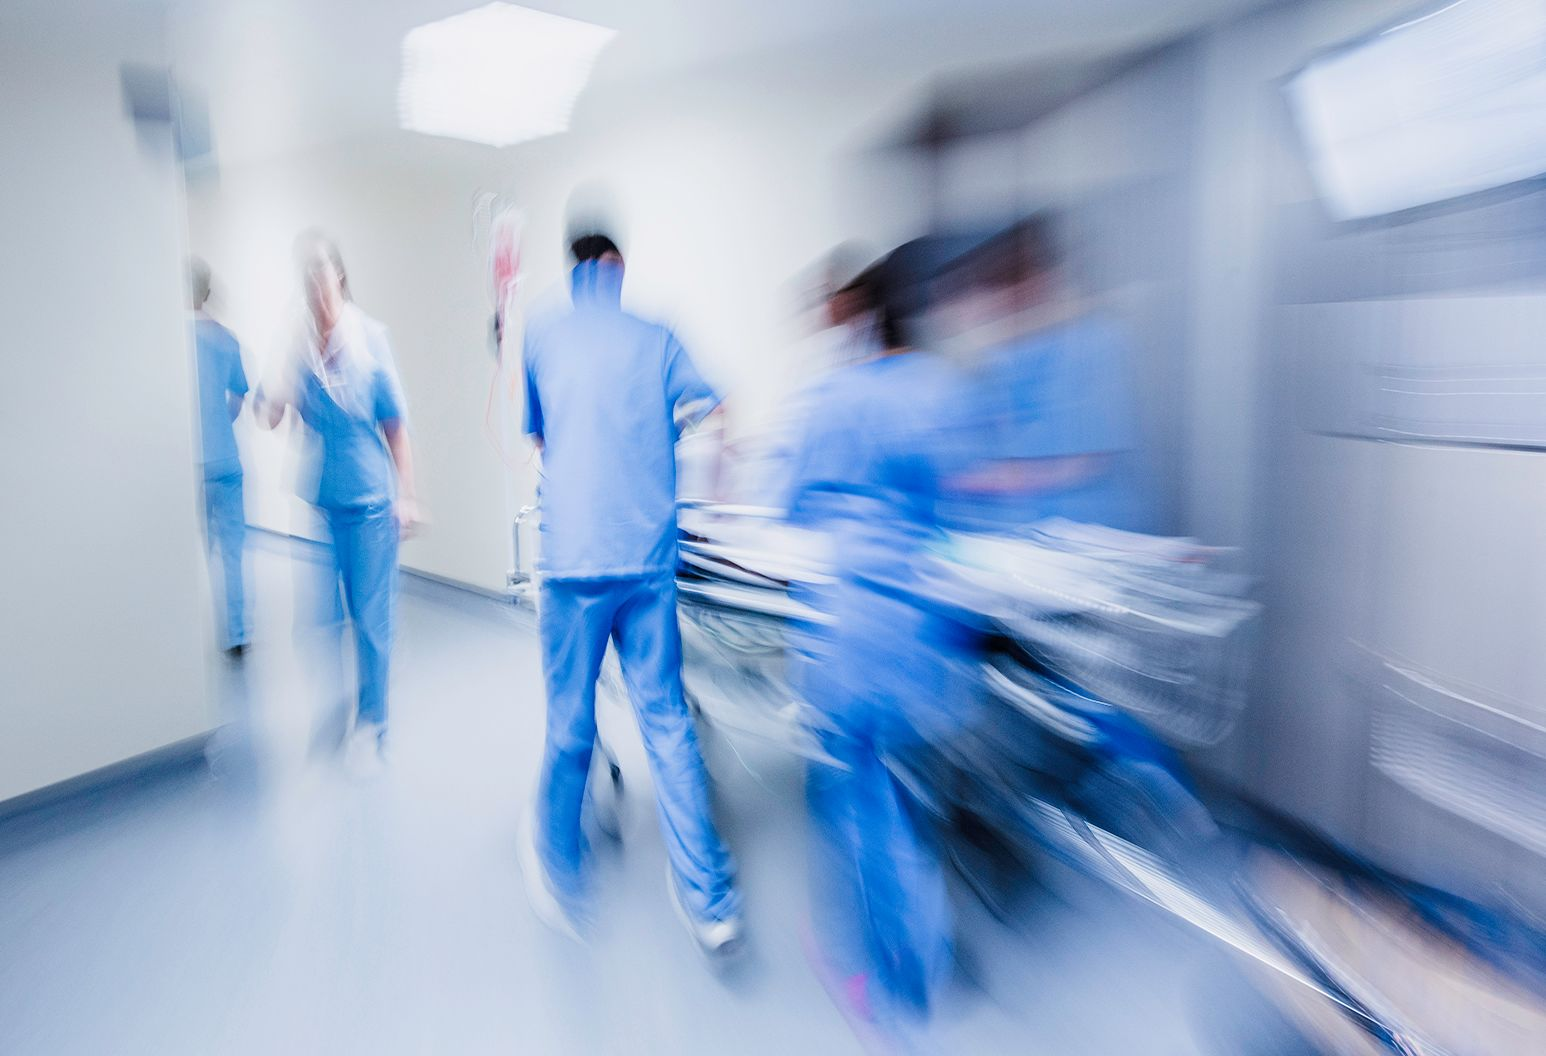 A blurry image of an emergency room staff quickly wheeling a patient down the hallway.